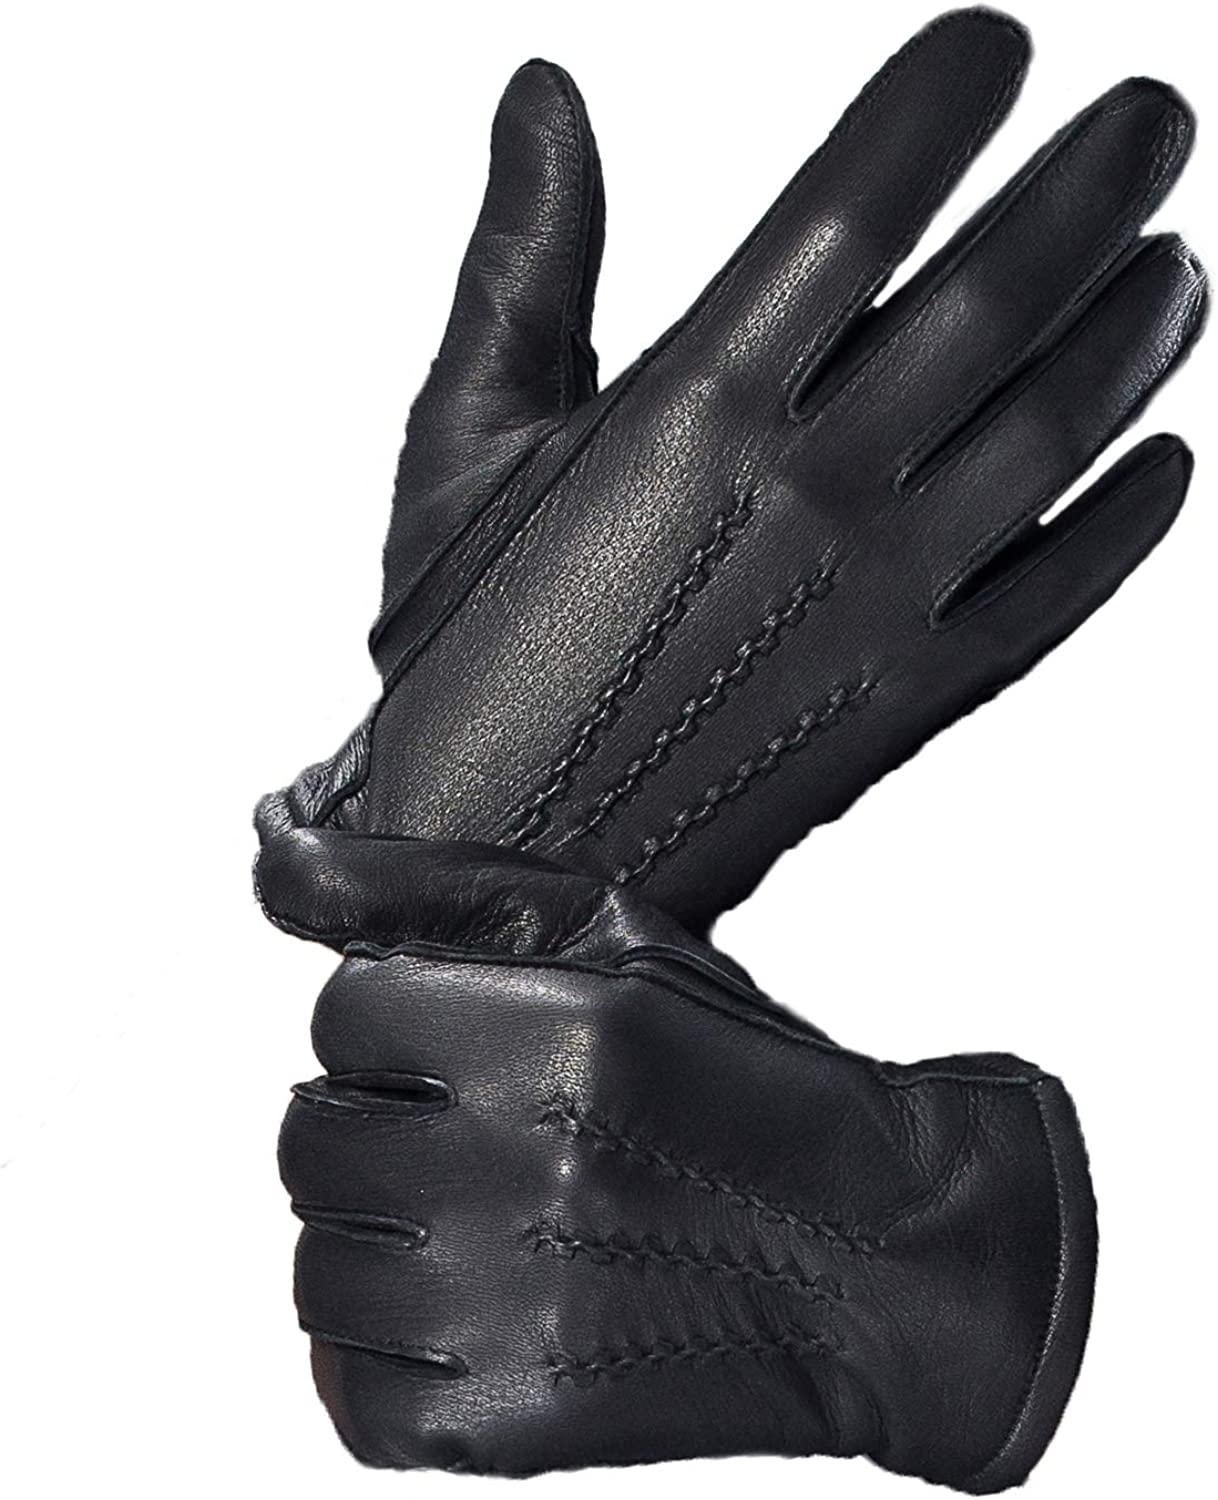 YISEVEN Mens Touchscreen Lambskin Leather Gloves Plain Design Wool Lined